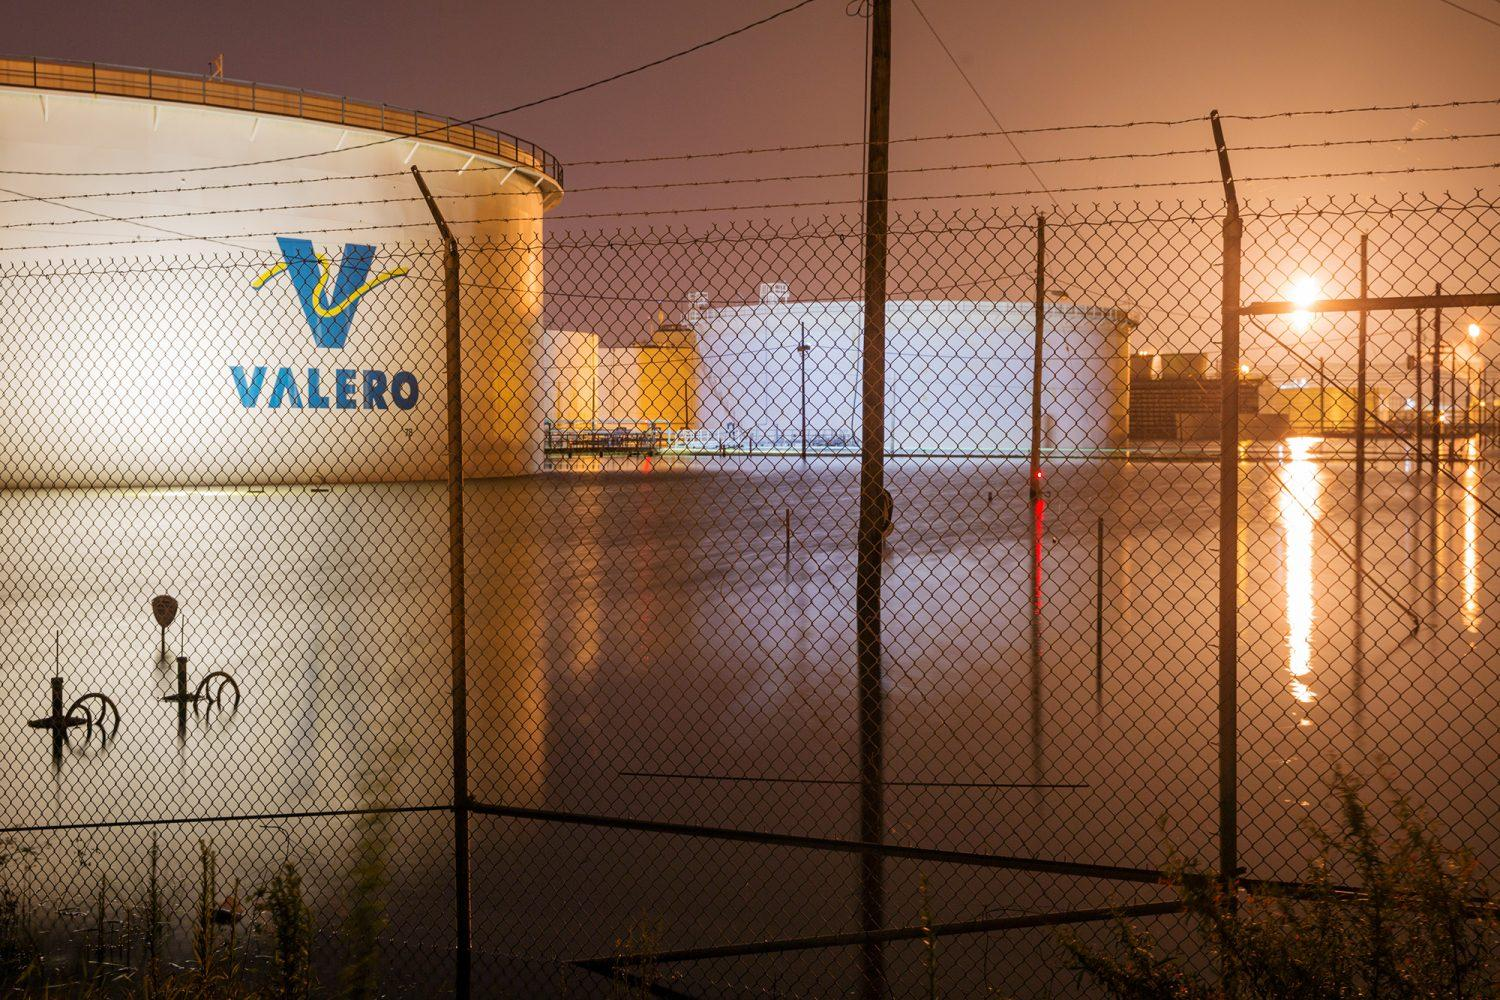 Photo of the Valero oil refinery in Port Arthur, Texas, flooded by Hurricane Harvey in 2017.